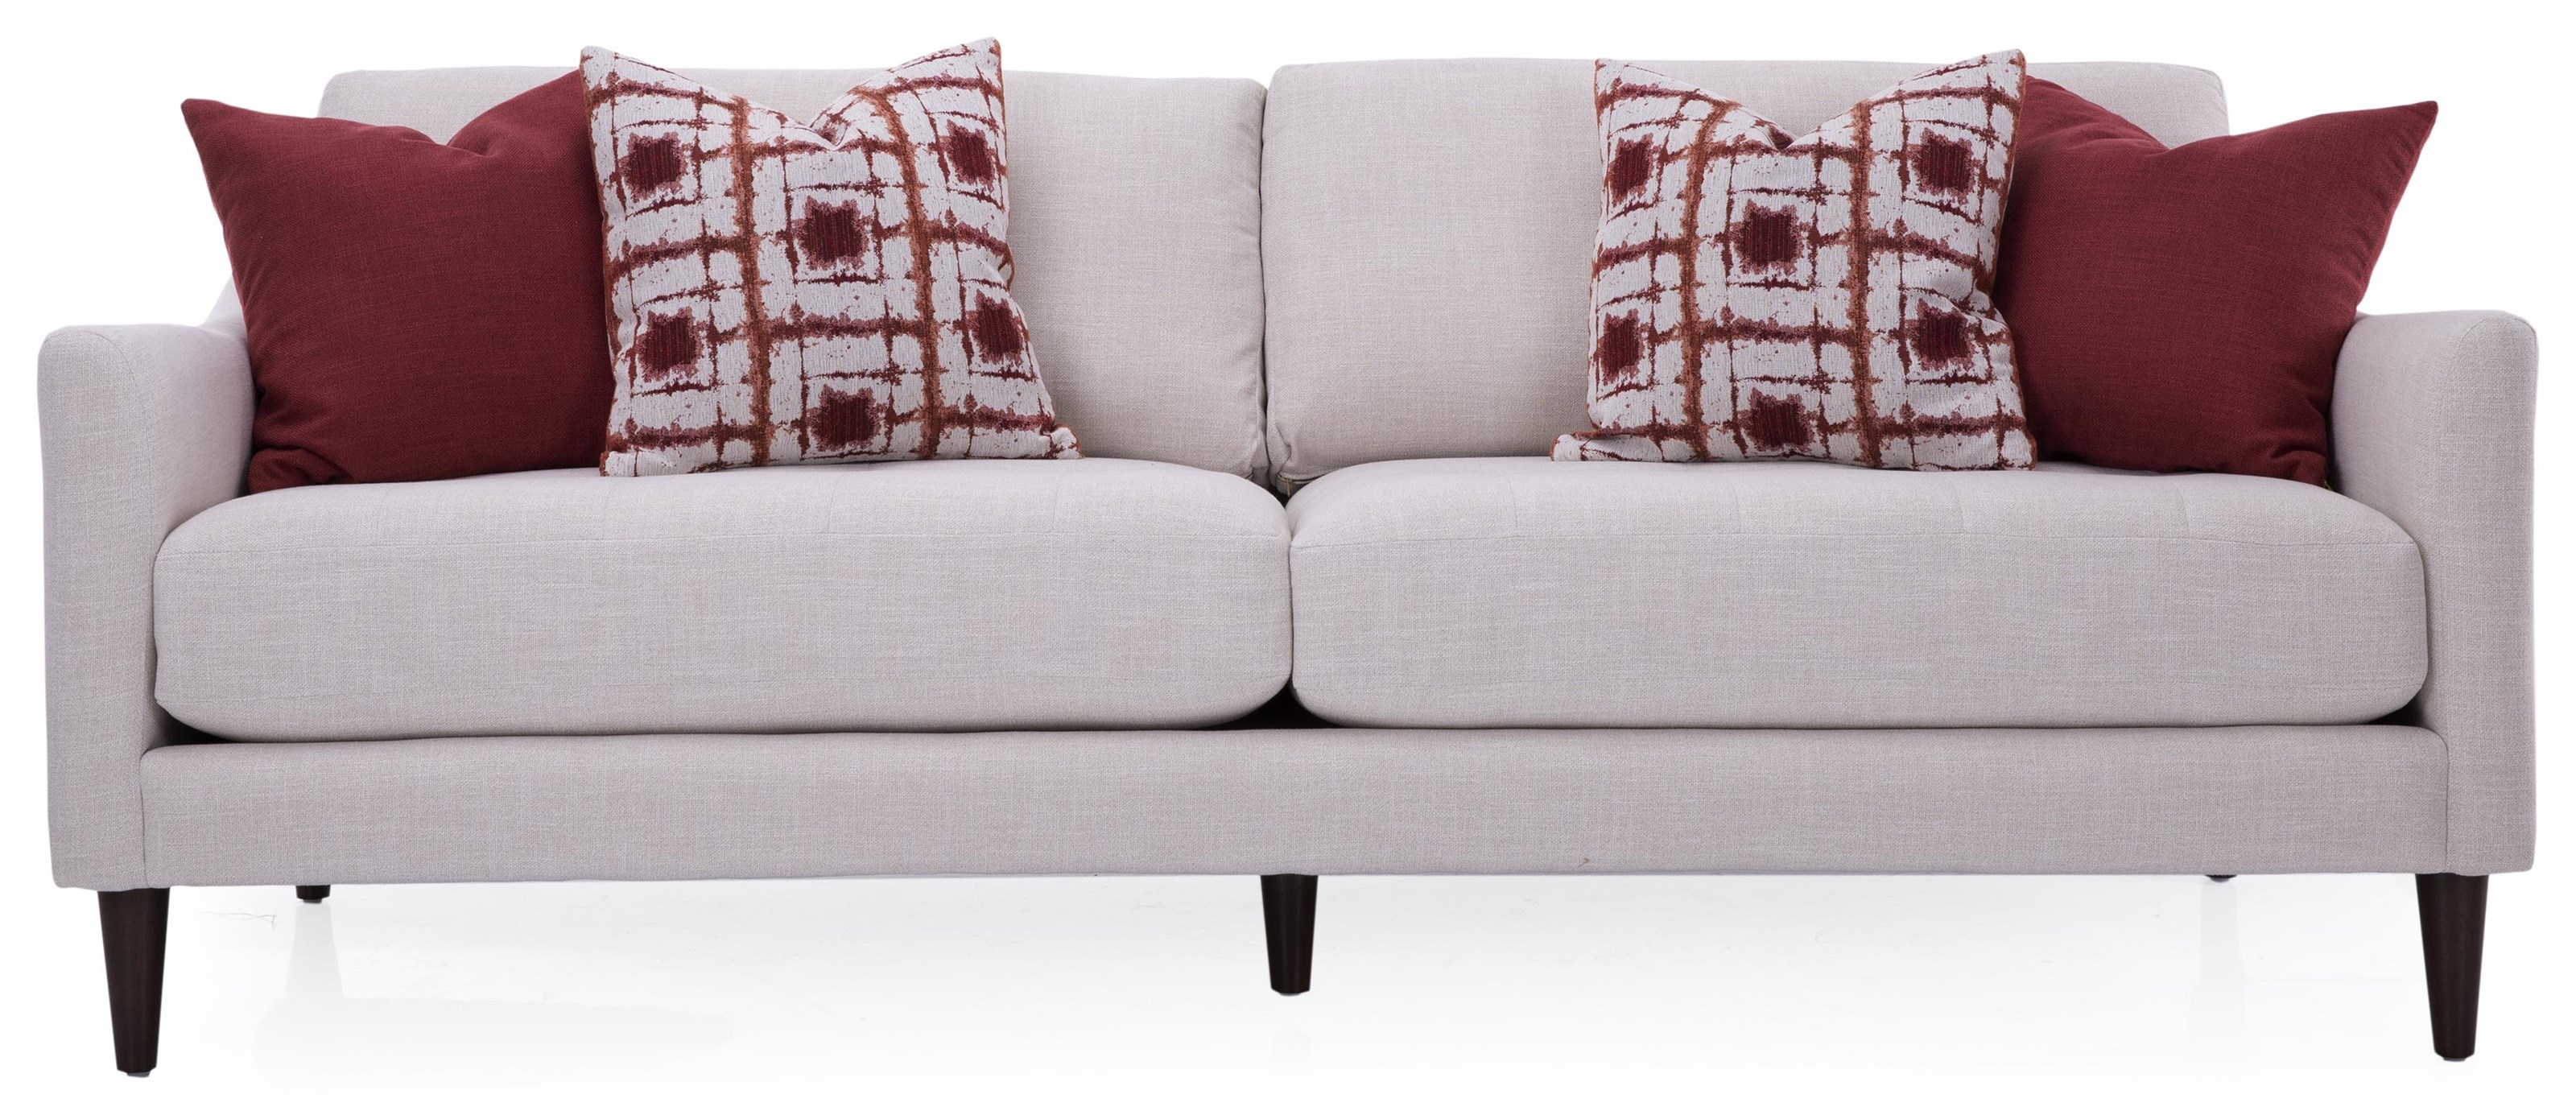 Bliss 3 Condo Sofa by Taelor Designs at Bennett's Furniture and Mattresses